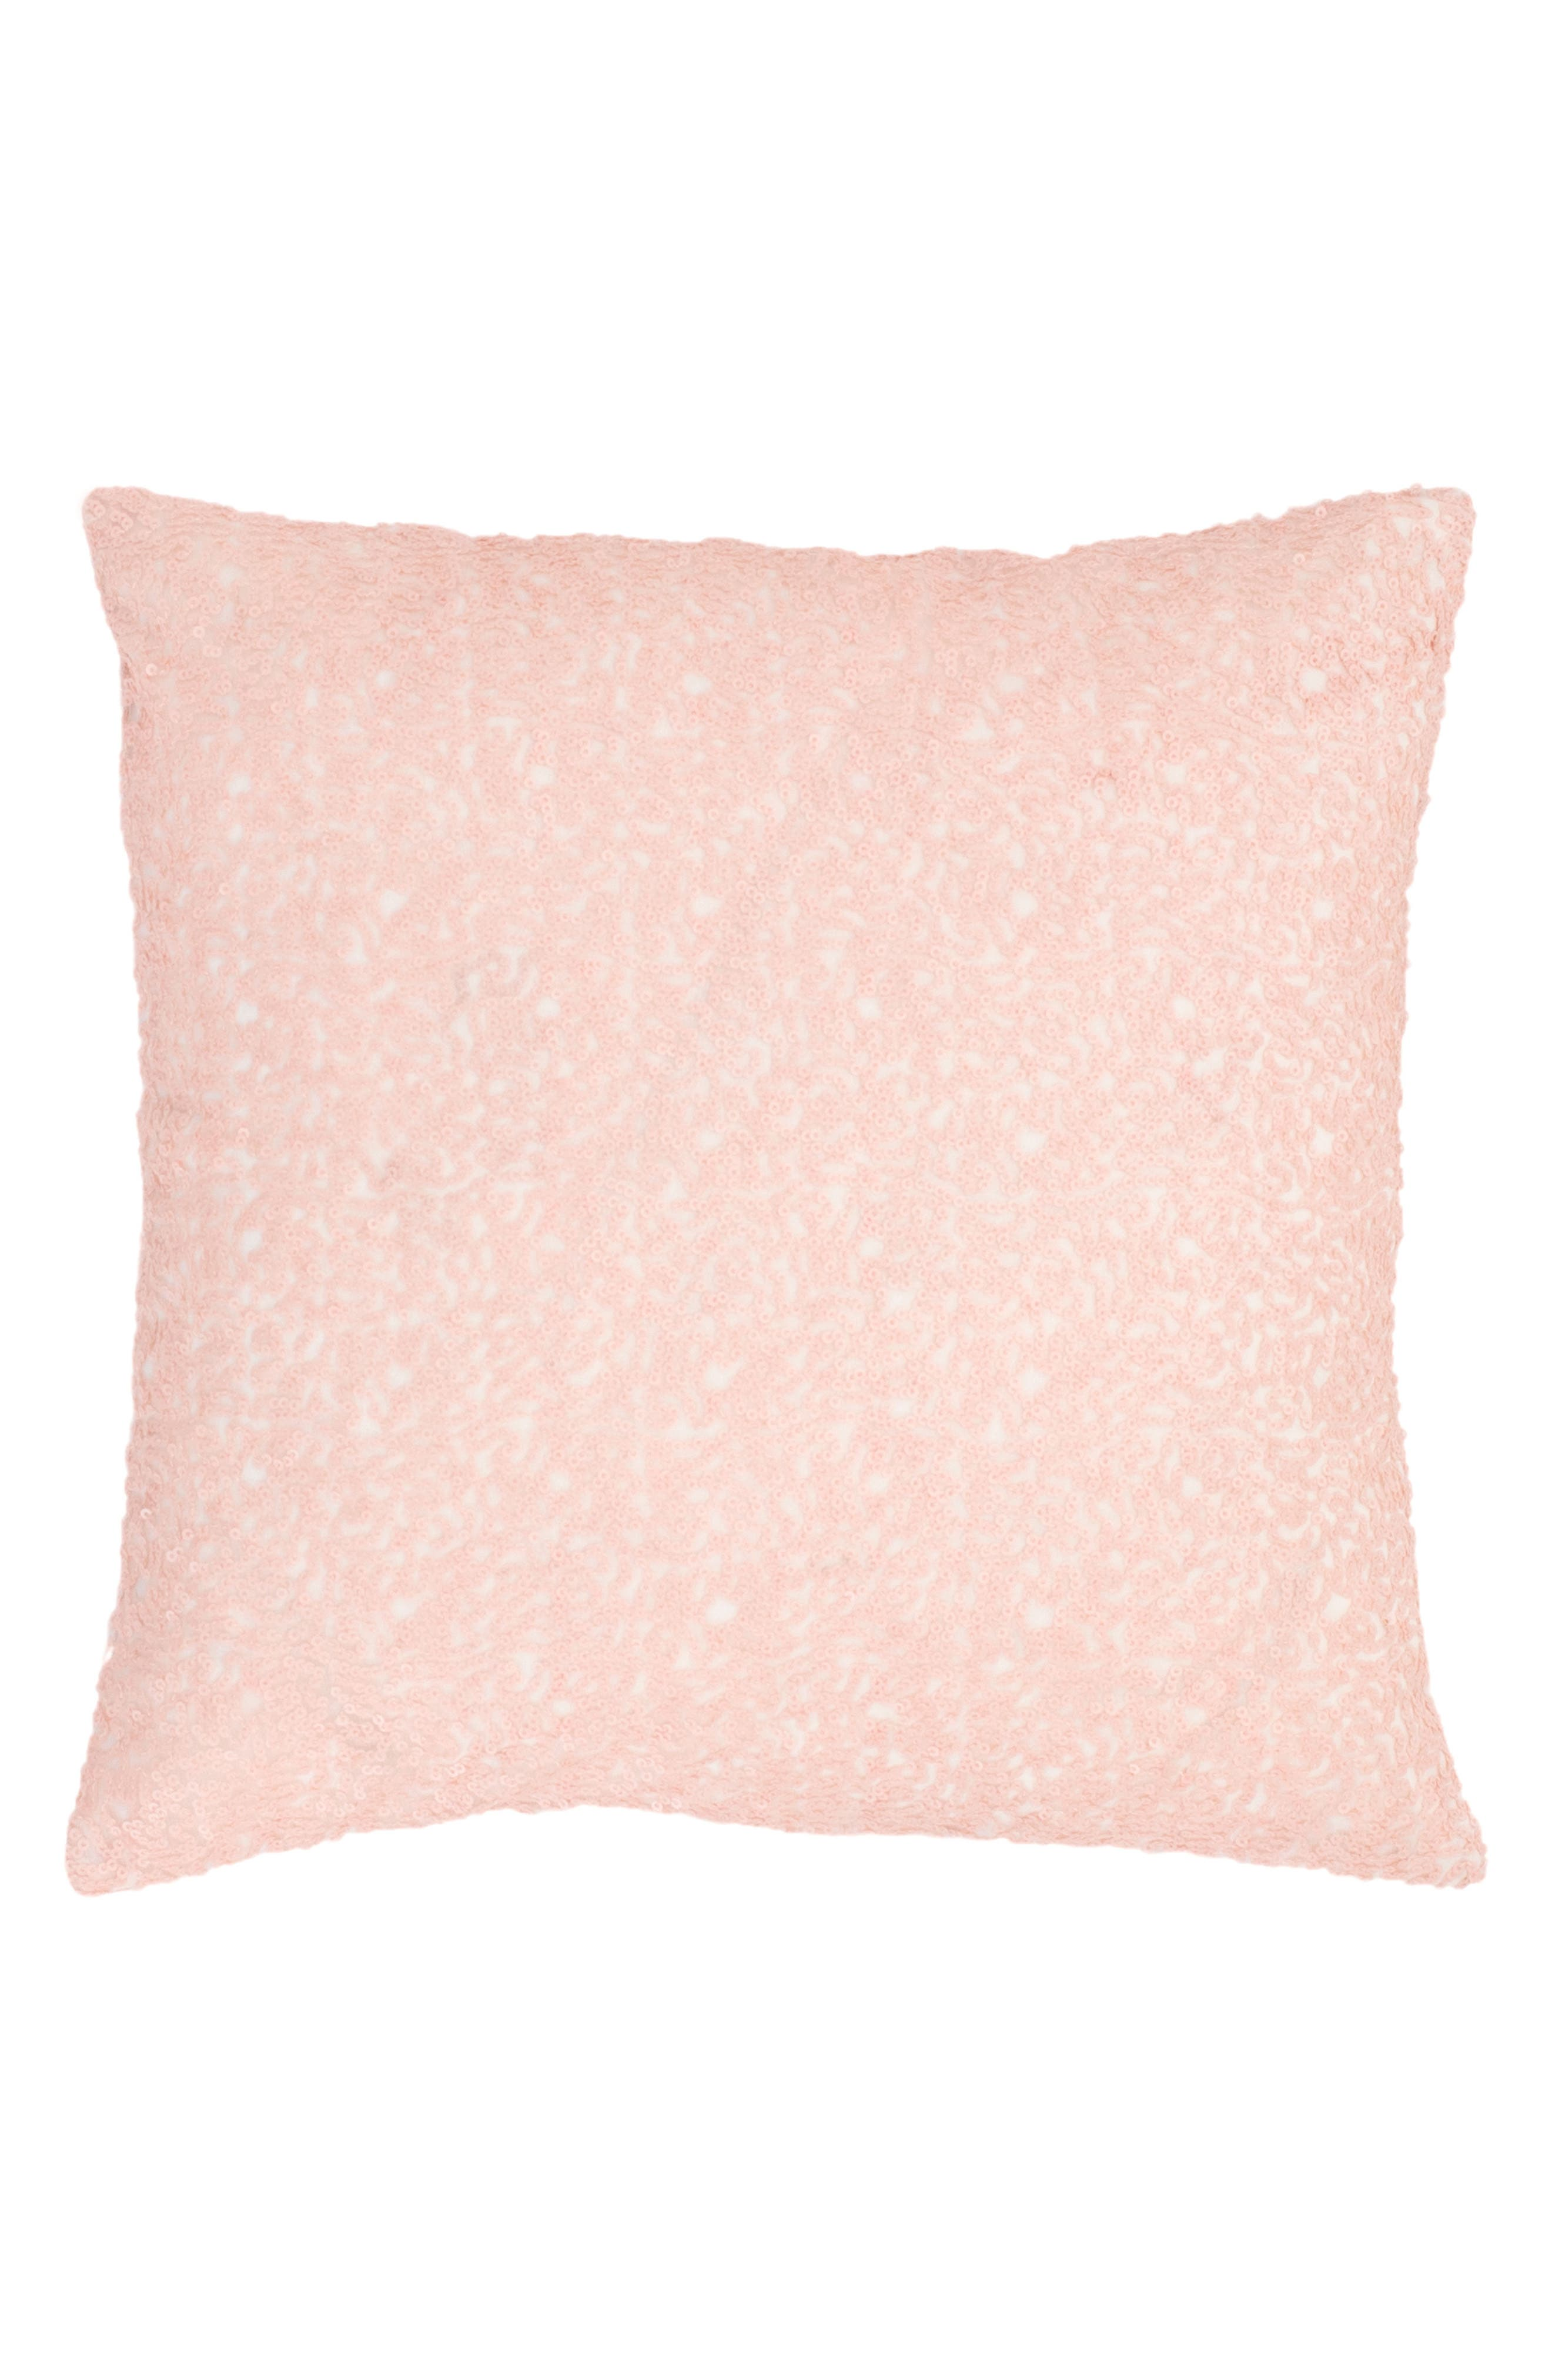 Main Image - Pine Cone Hill Glaze Sequin Accent Pillow